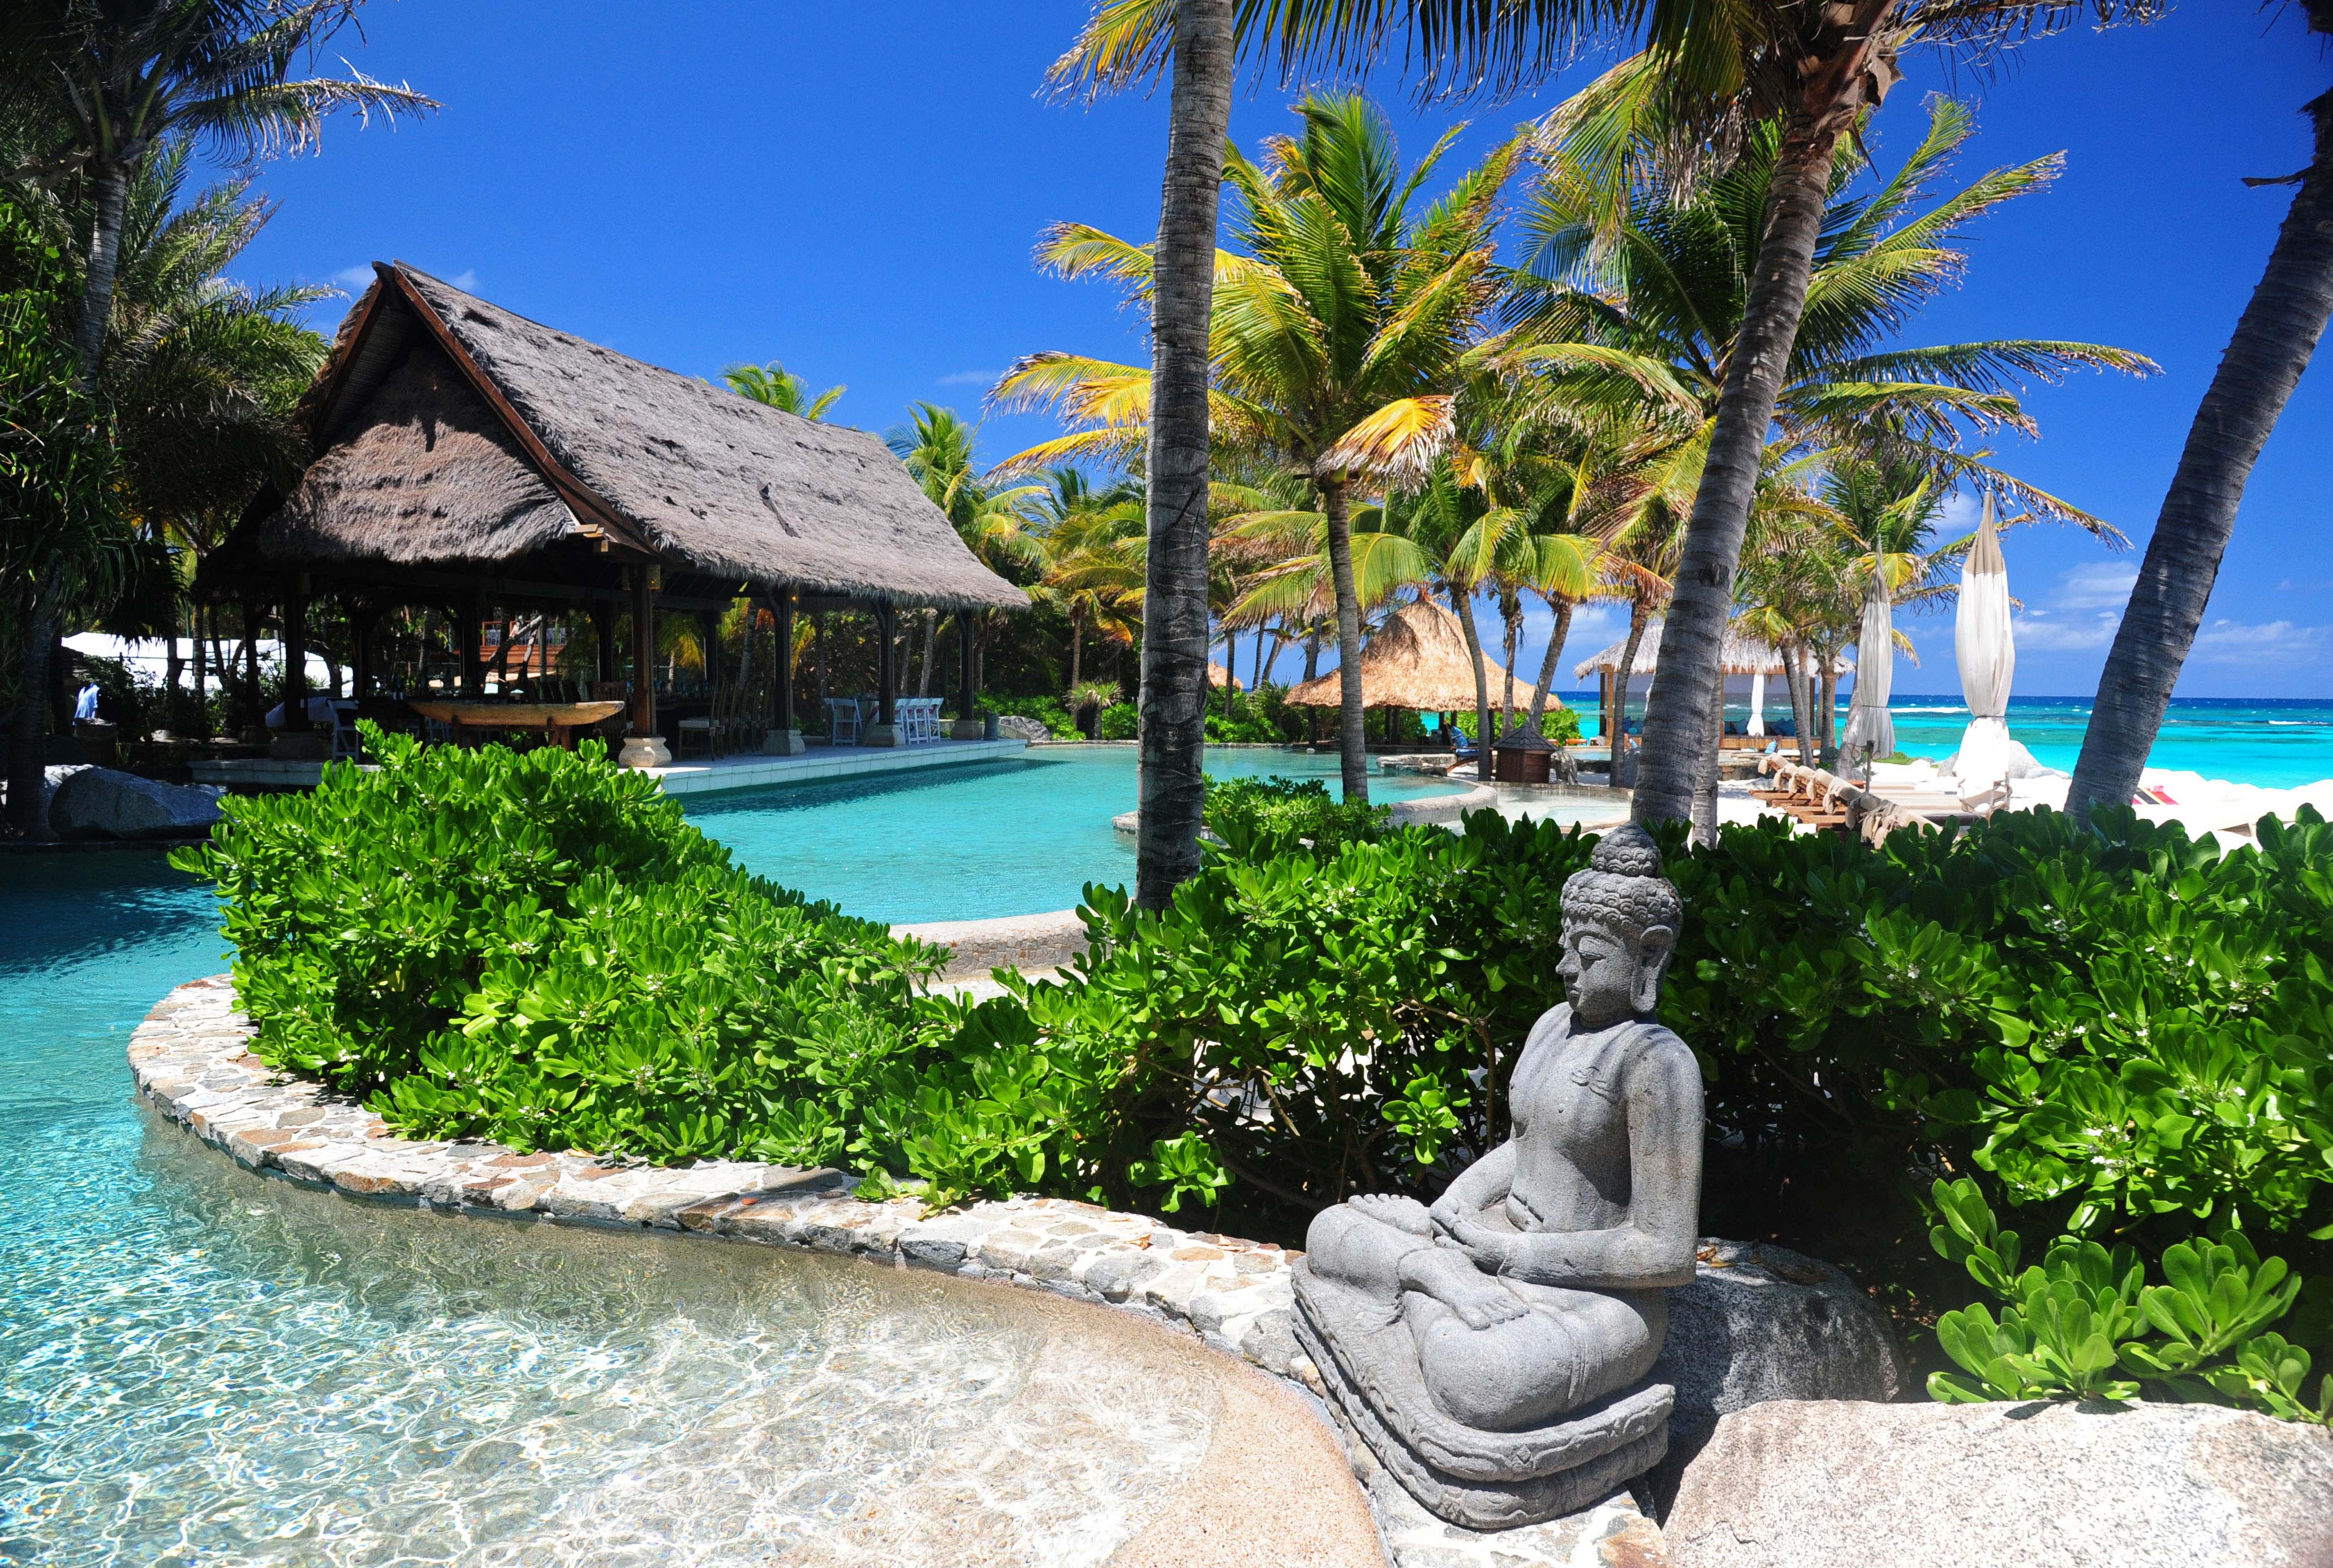 FILE - A statue decorates the pool area of Richard Branson's property on Necker Island in the British Virgin Islands.